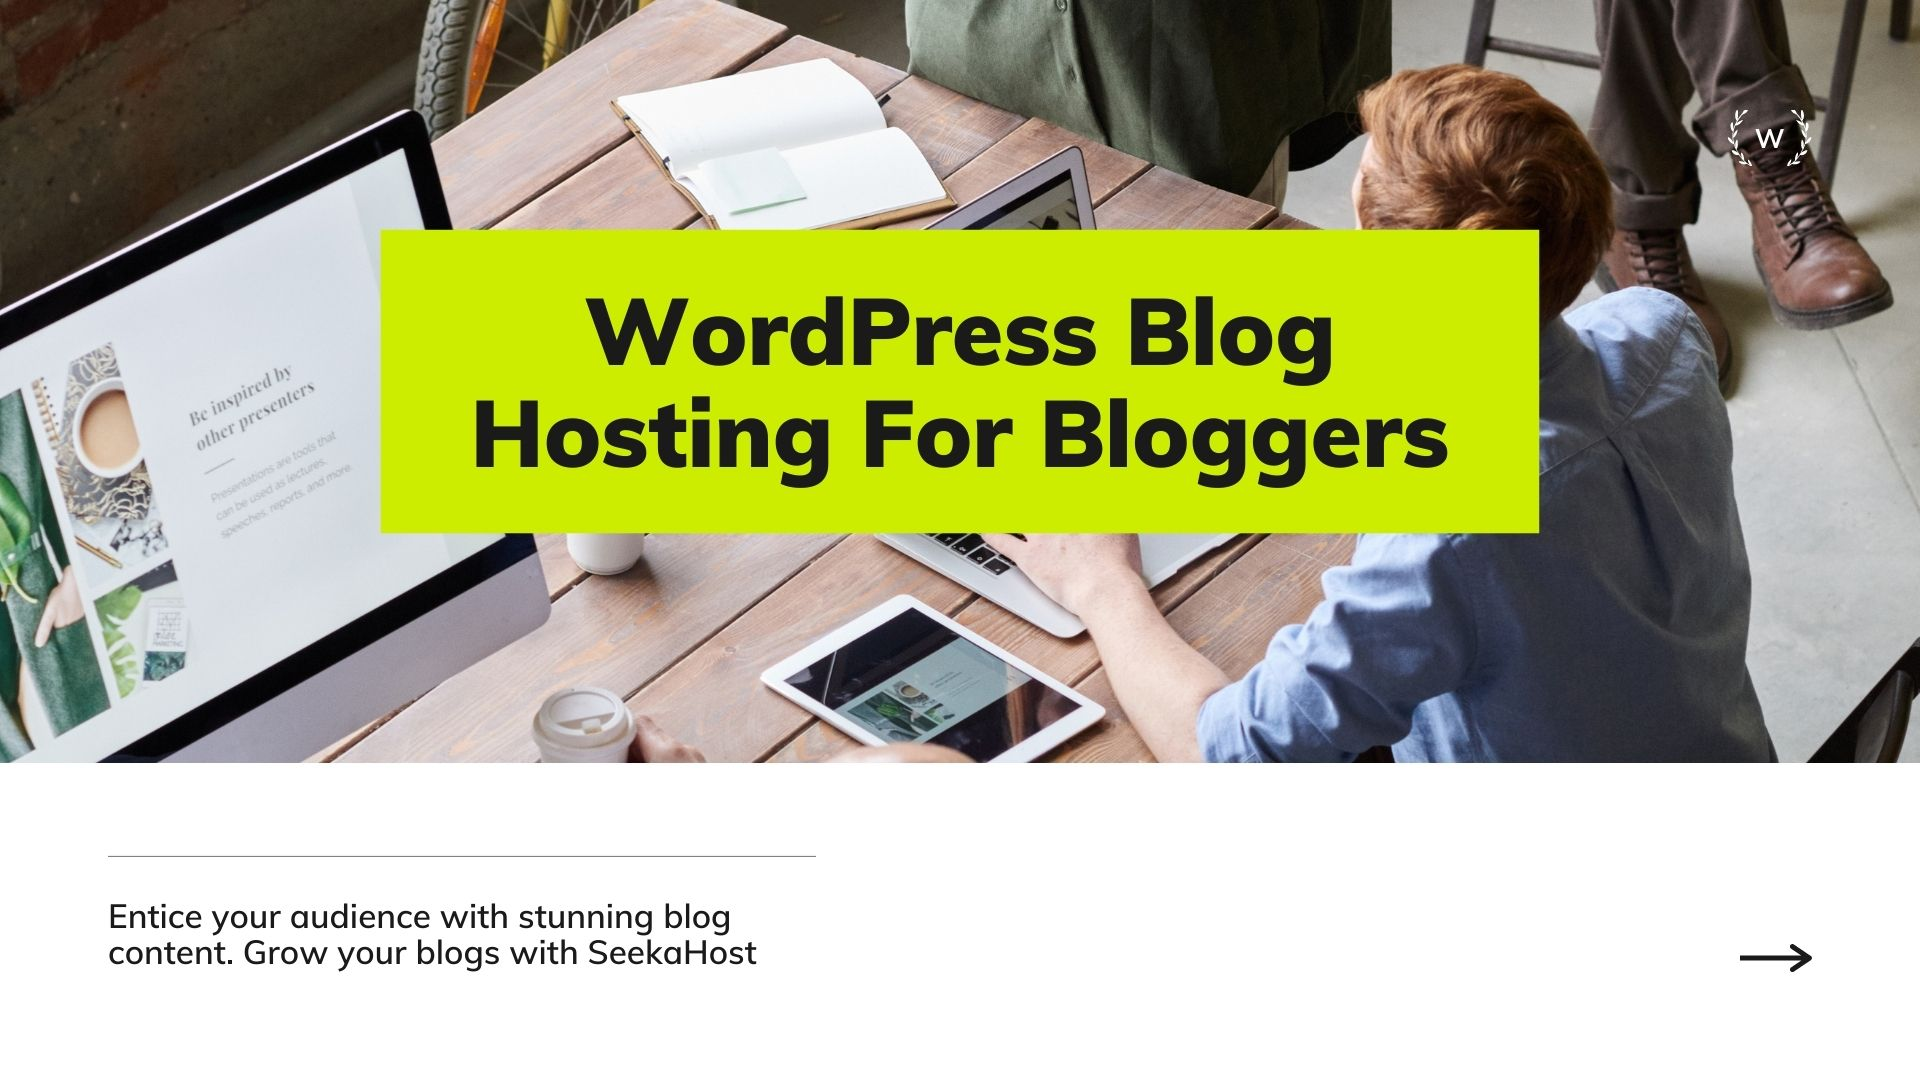 SeekaHost-WordPress-Blog-Hosting-For-Bloggers